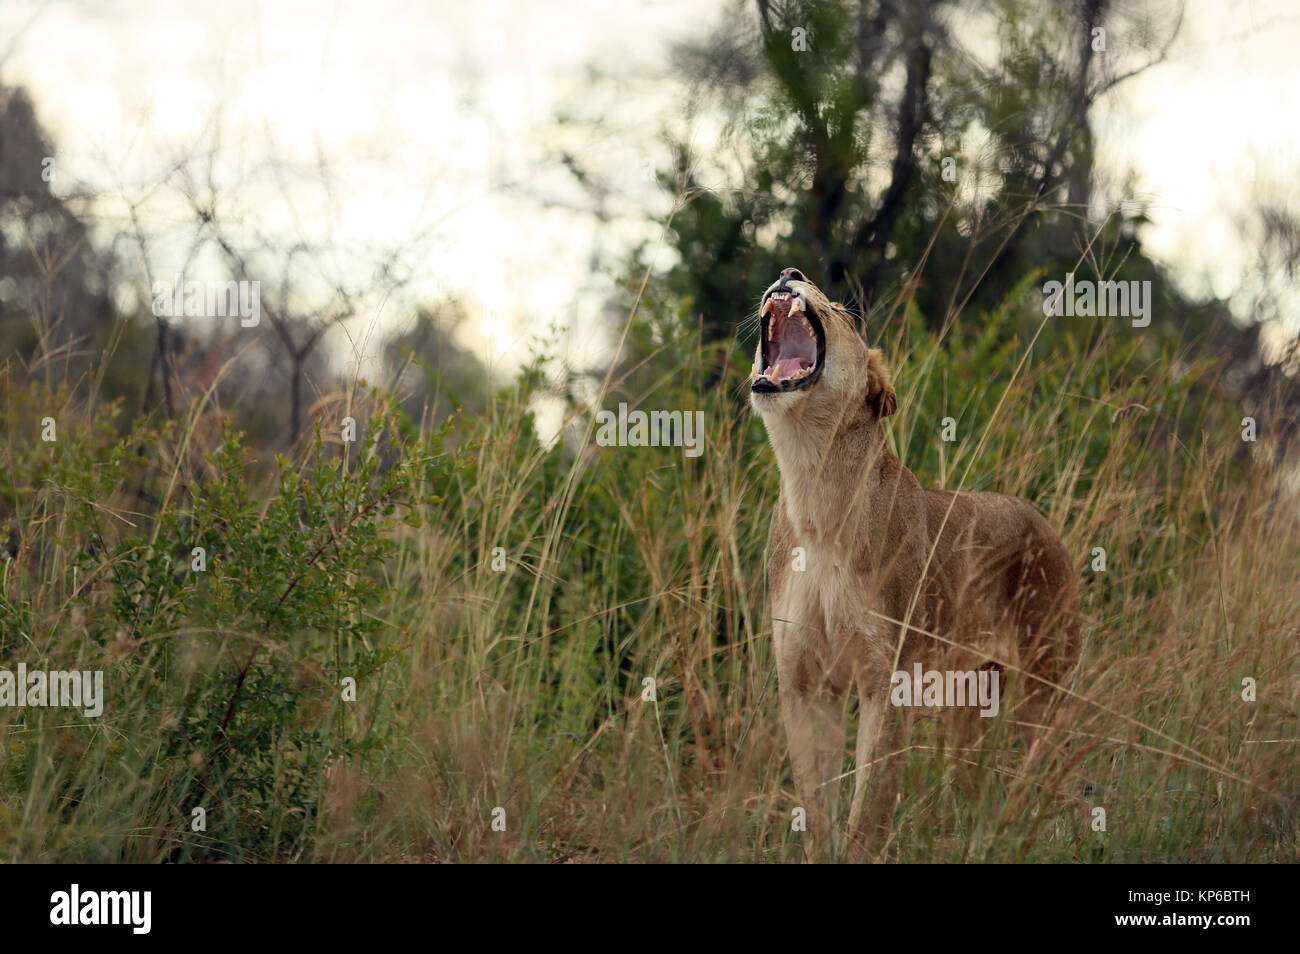 Kruger National Park. Lioness yawning (Panthera leo). South Africa. Stock Photo